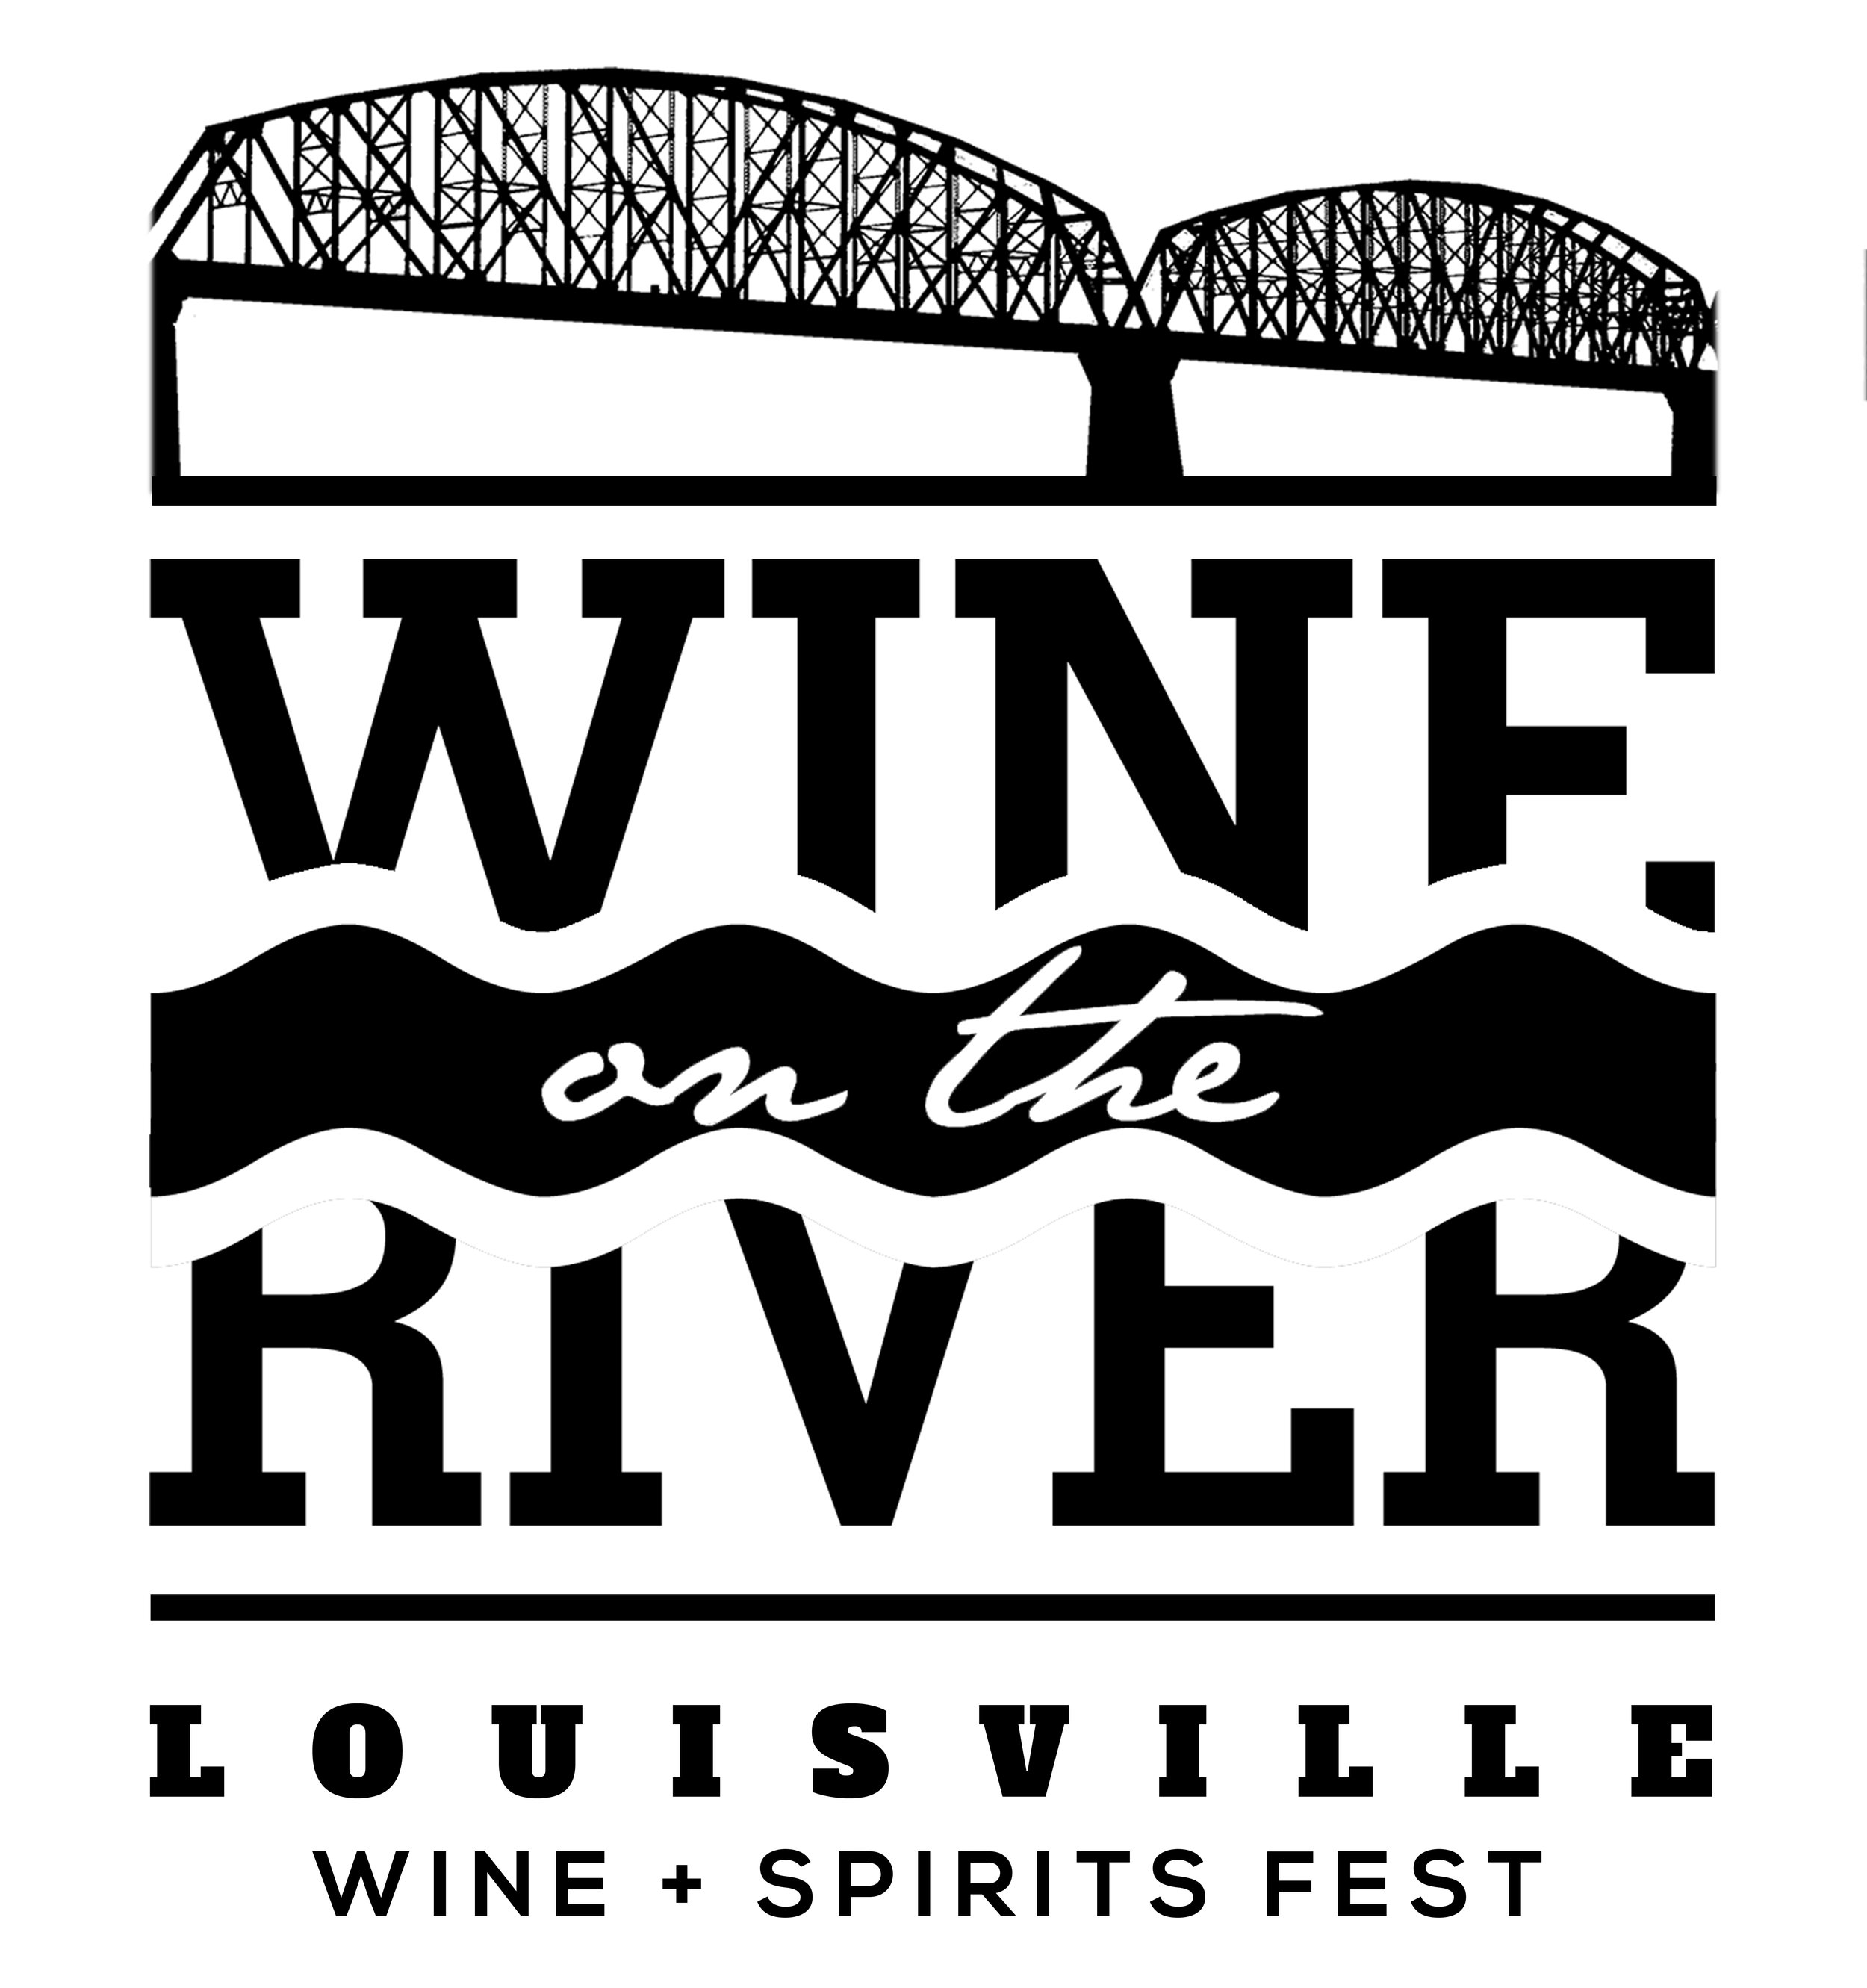 Wine on the RIver logos - USE THIS ONE - LOUSIVILLE nexa.jpg